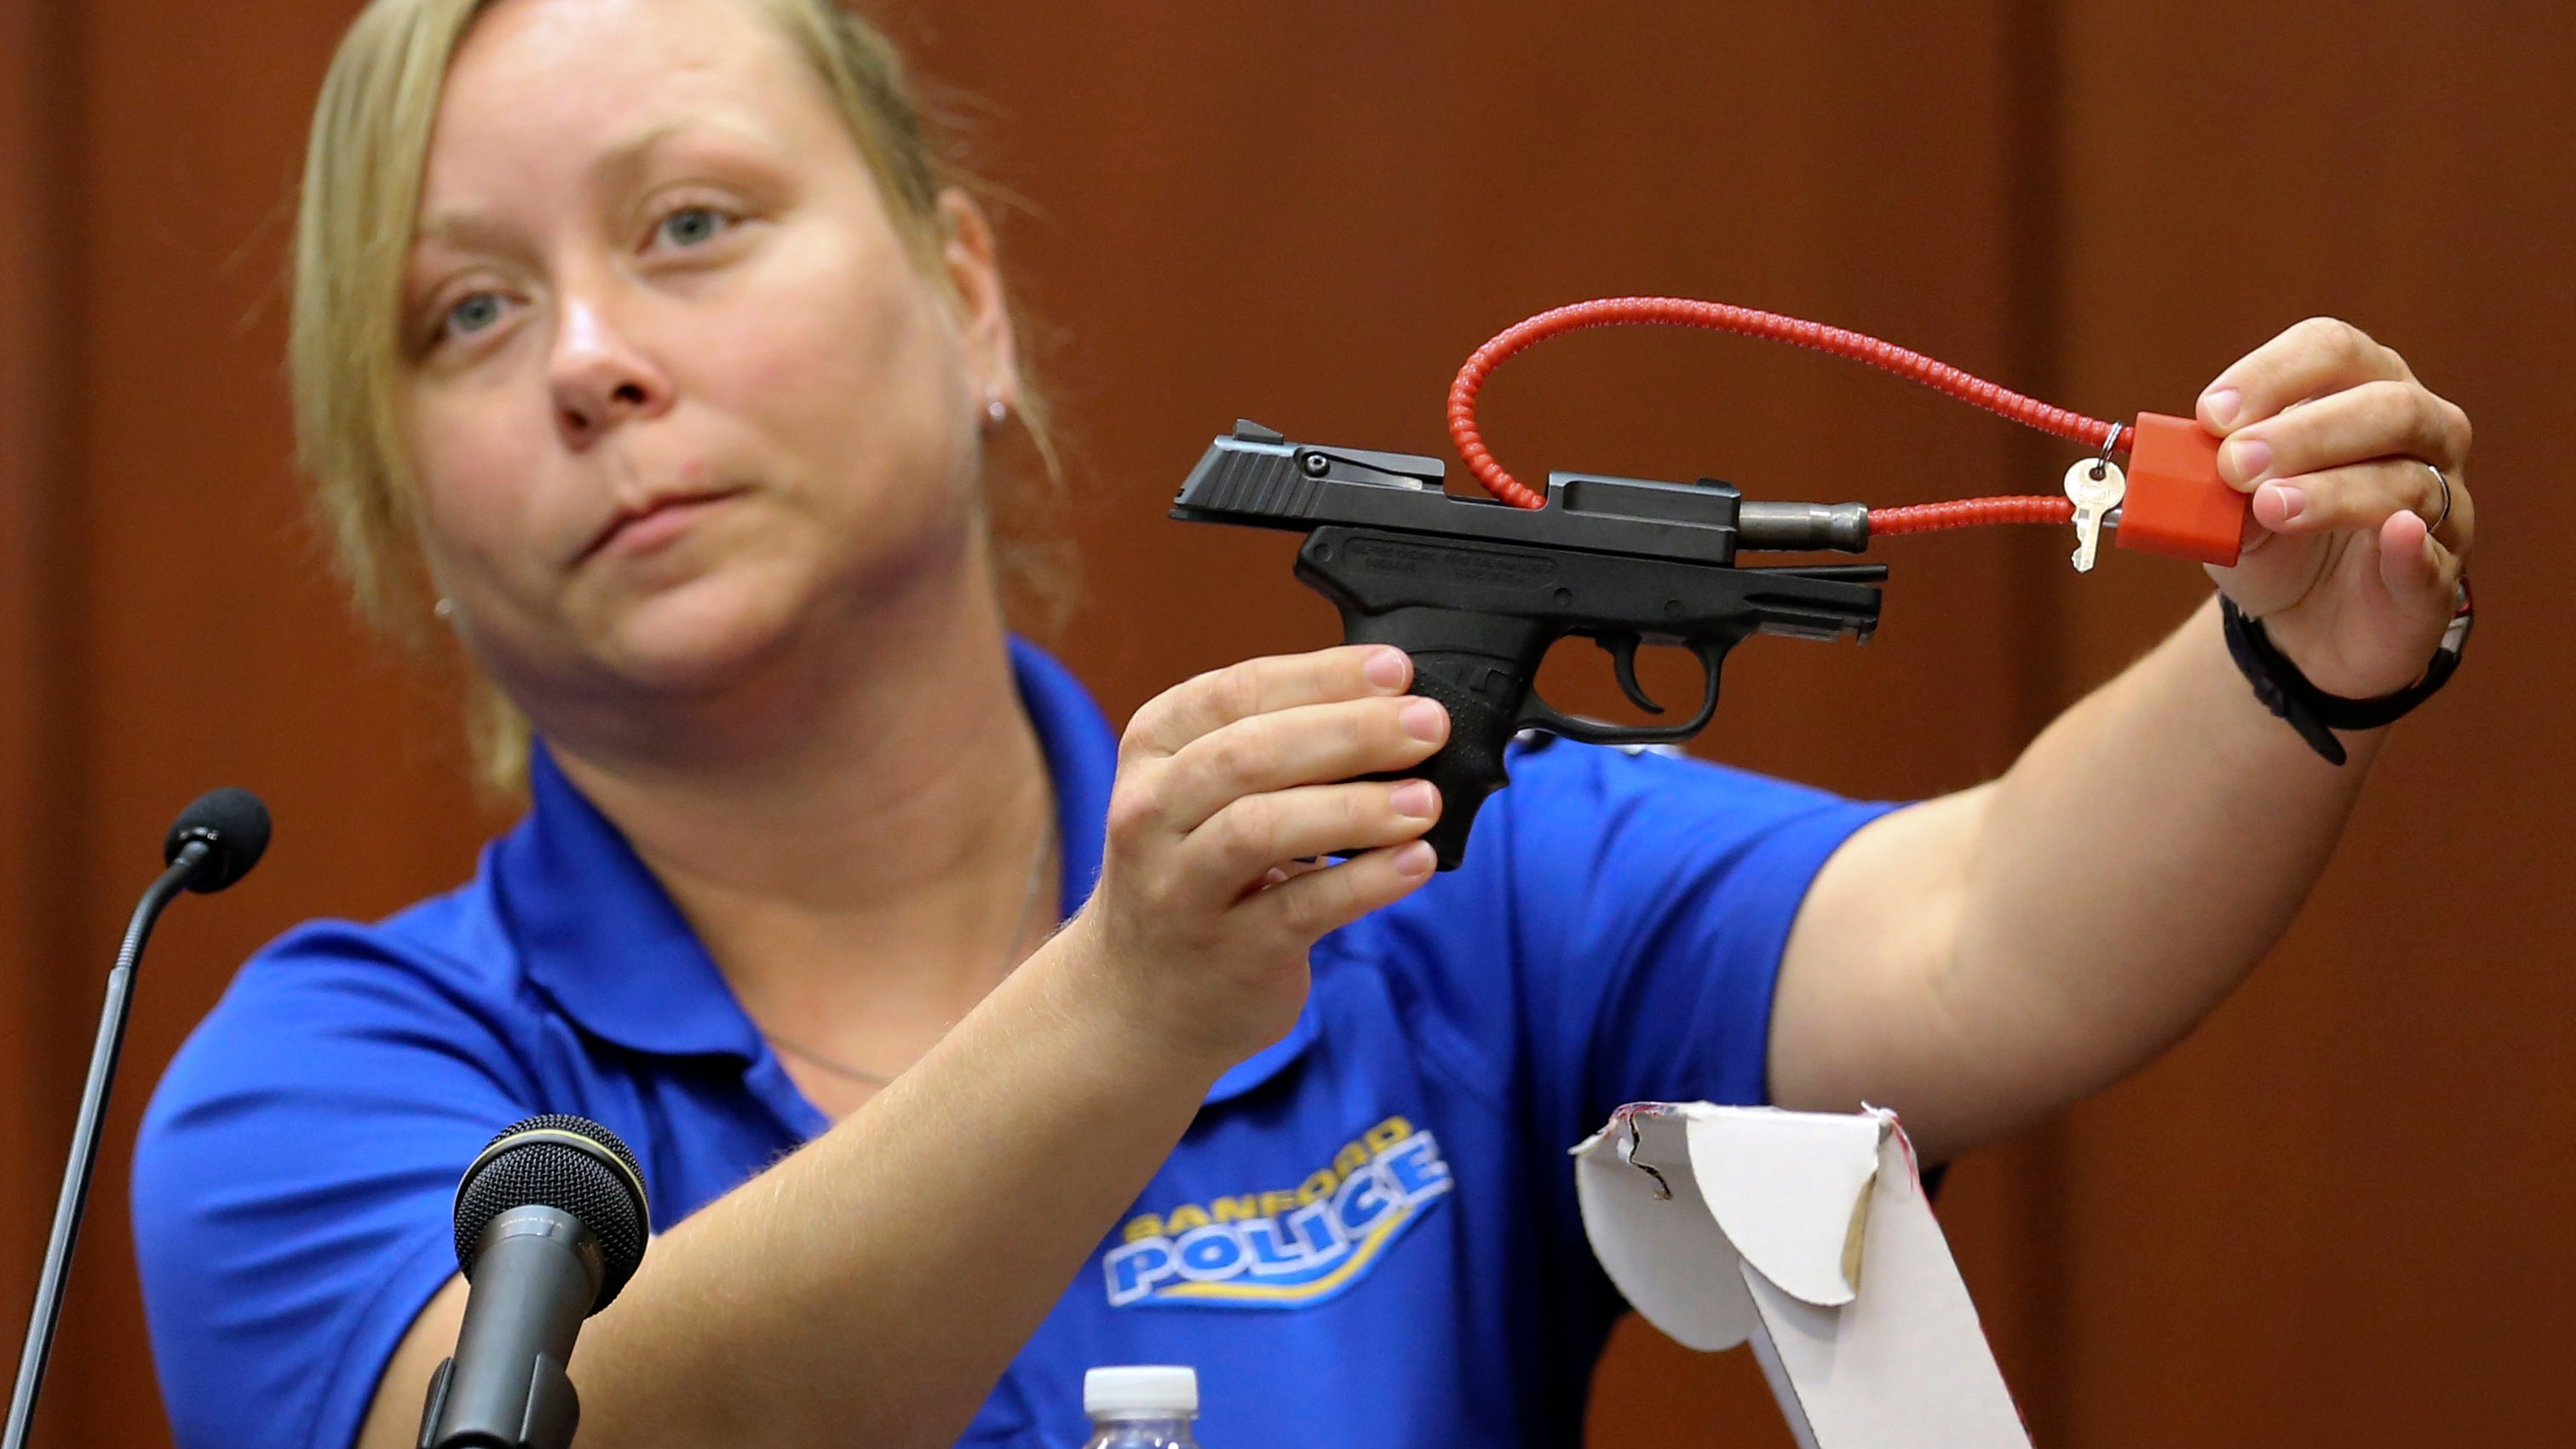 Smithsonian: No, We Did Not Try to Buy the Gun that Killed Trayvon Martin